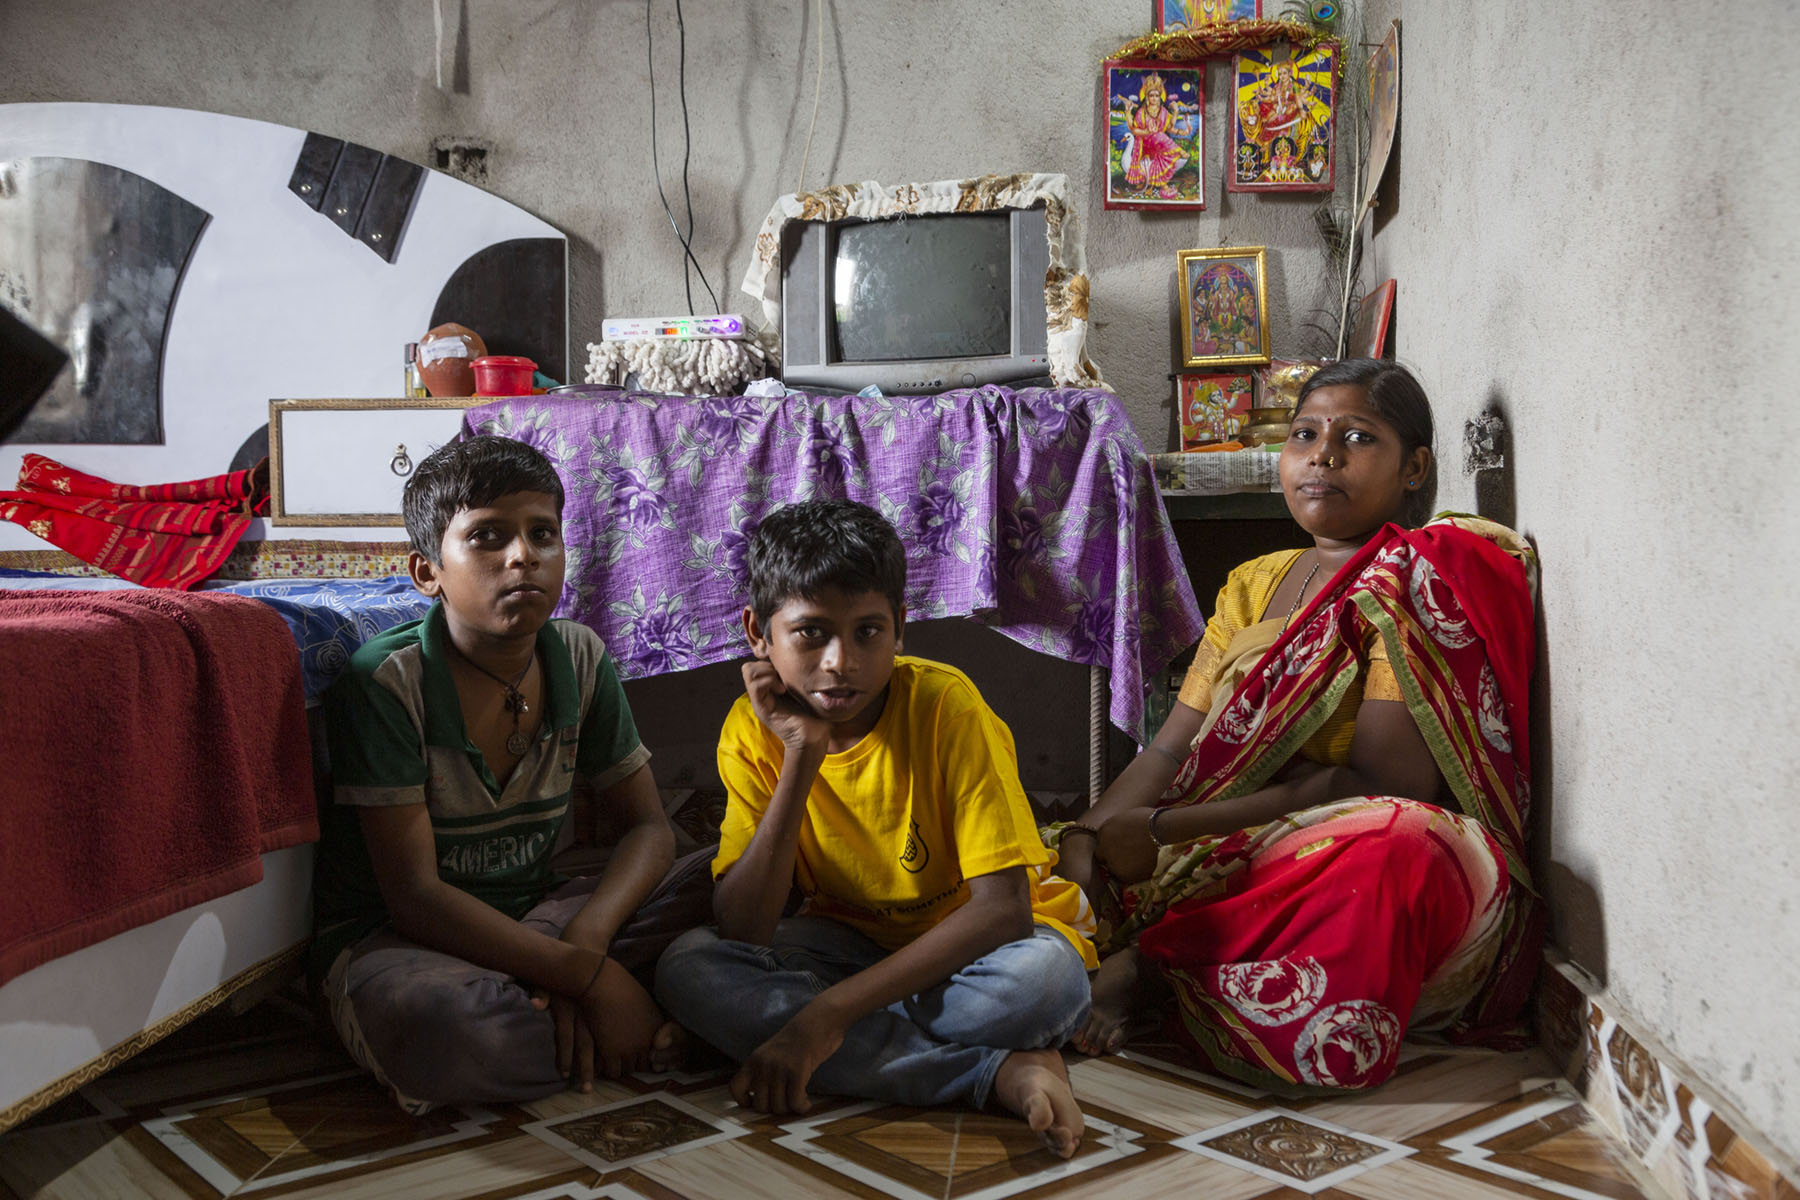 Sitting cross-legged on the floor of a small room with bare concrete walls are (from left to right), Aman's brother Ankit Kumar Mahto (12), Aman, and their mother Sanu Devi (33). Ankit wears a green and grey T-shirt and grey pants; Aman wears a yellow T-shirt and blue jeans; Sanu wears a red sari and yellow blouse. The floor is paved with tiles in a design of brown and white squares. To their left is a cot covered with a red blanket. Behind them, an old TV sits on top of a table covered with a cloth in a violet and grey pattern. To the right of the table is a stand with framed pictures of many gods and goddesses.